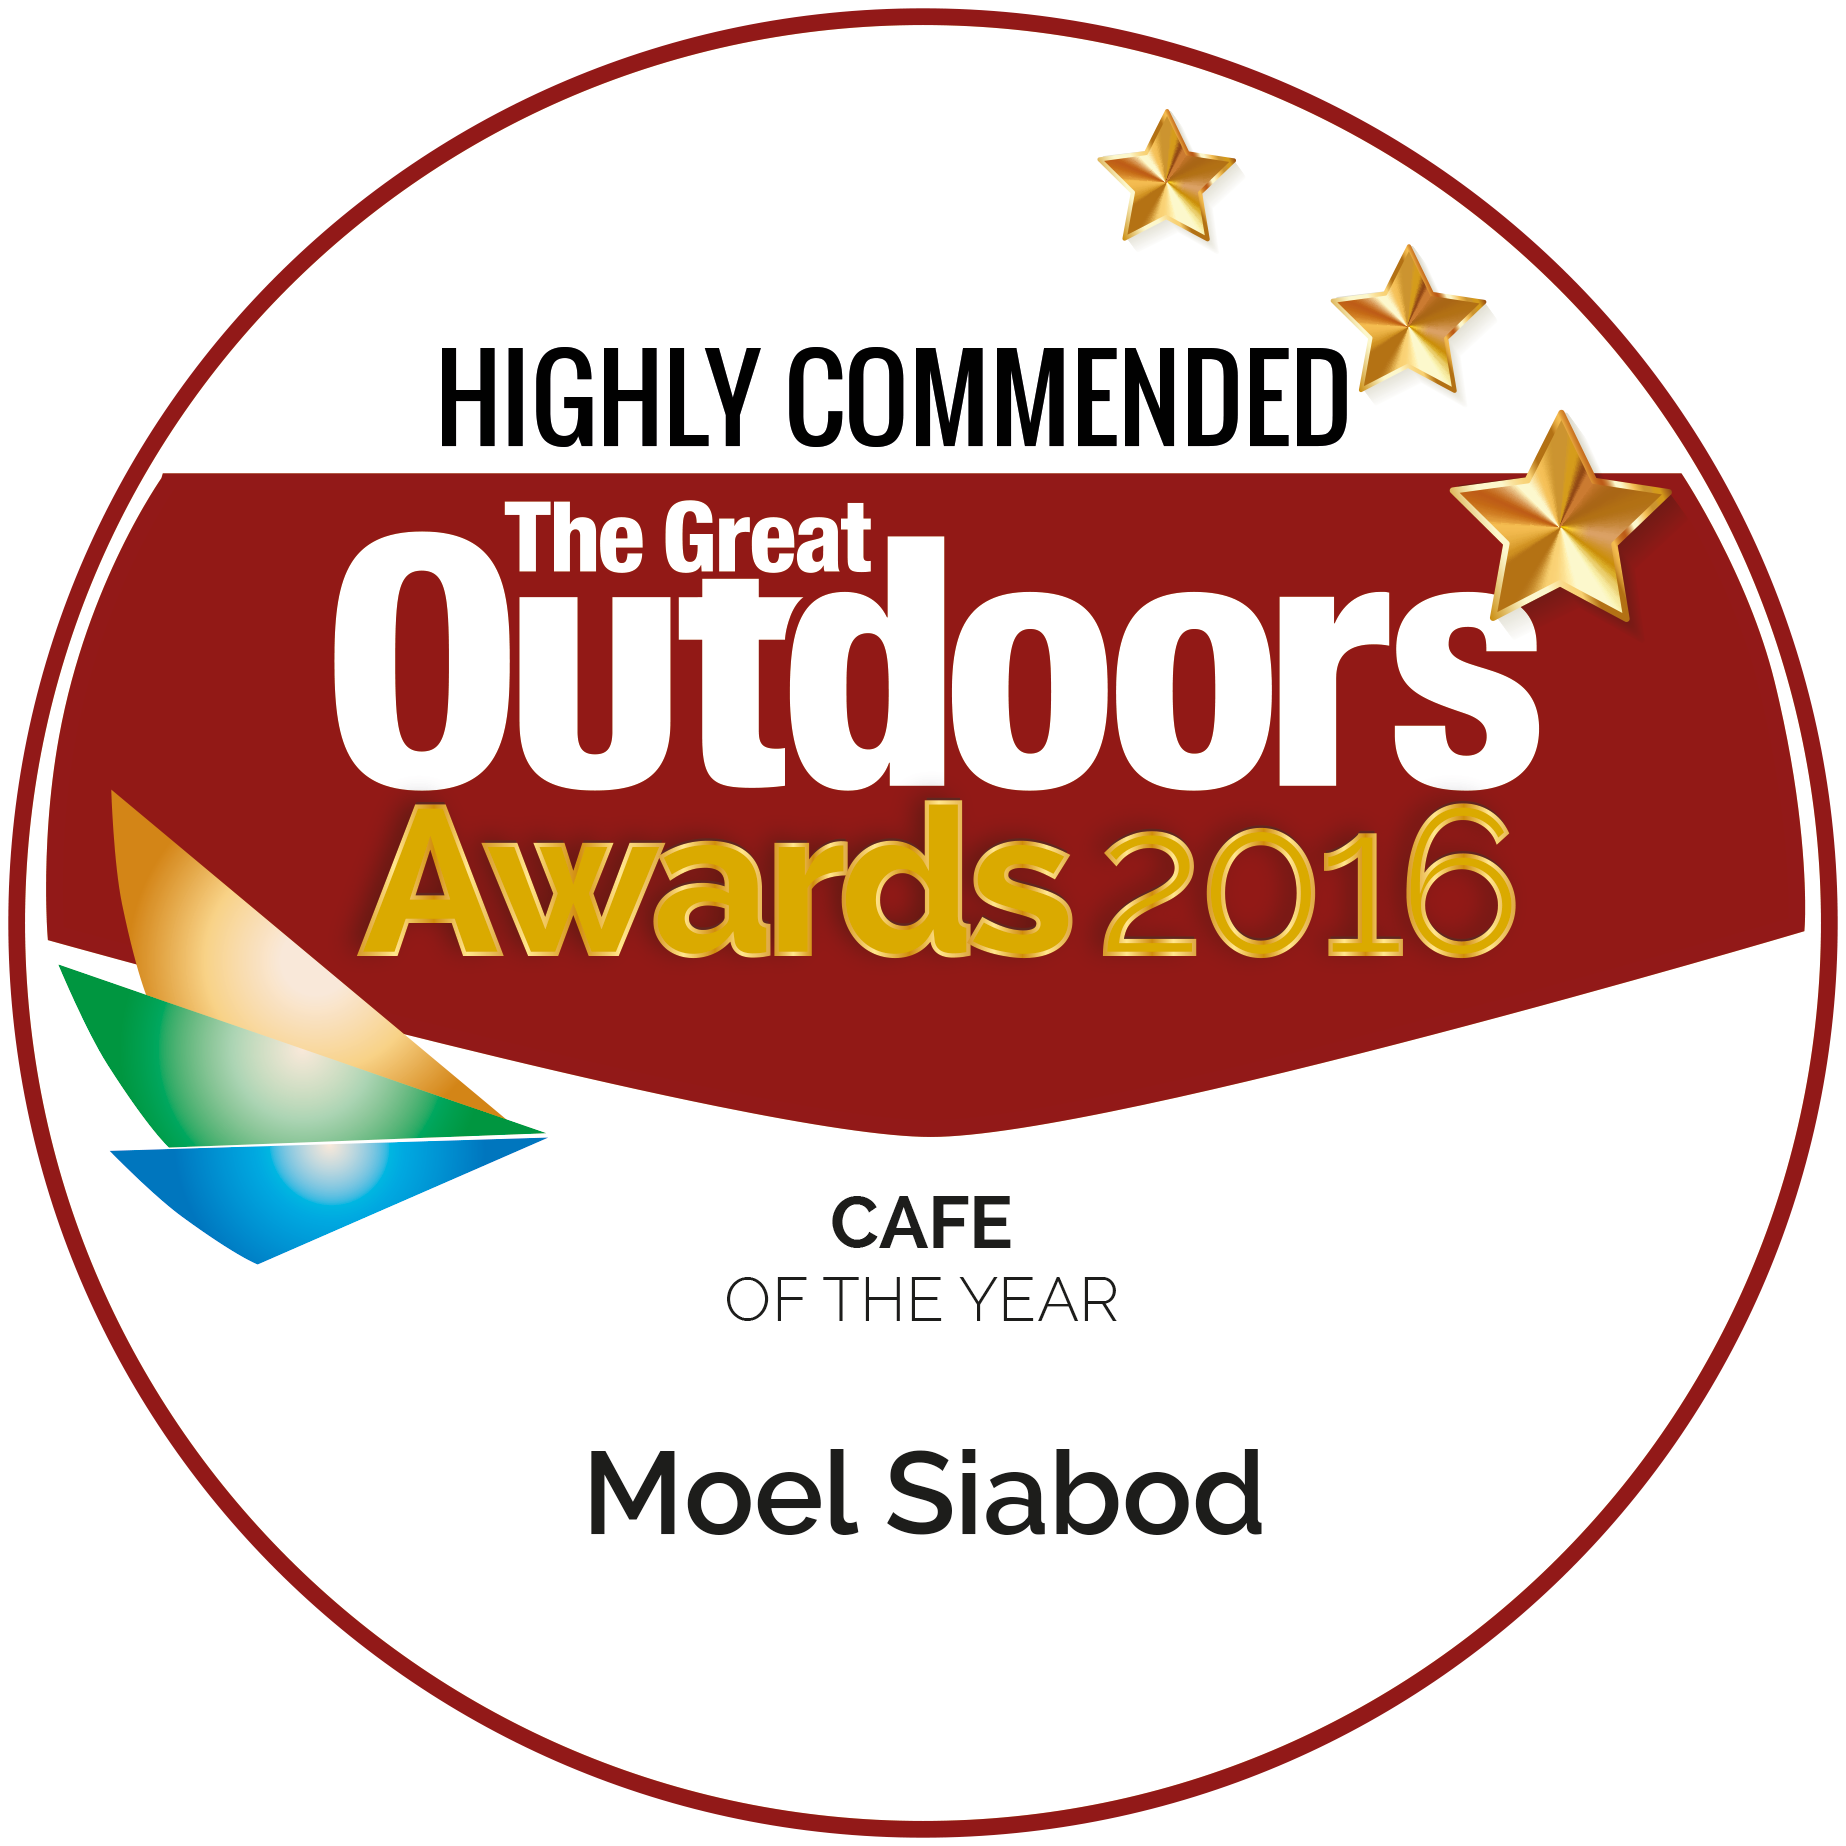 Highly commended award from The great outdoors 2015